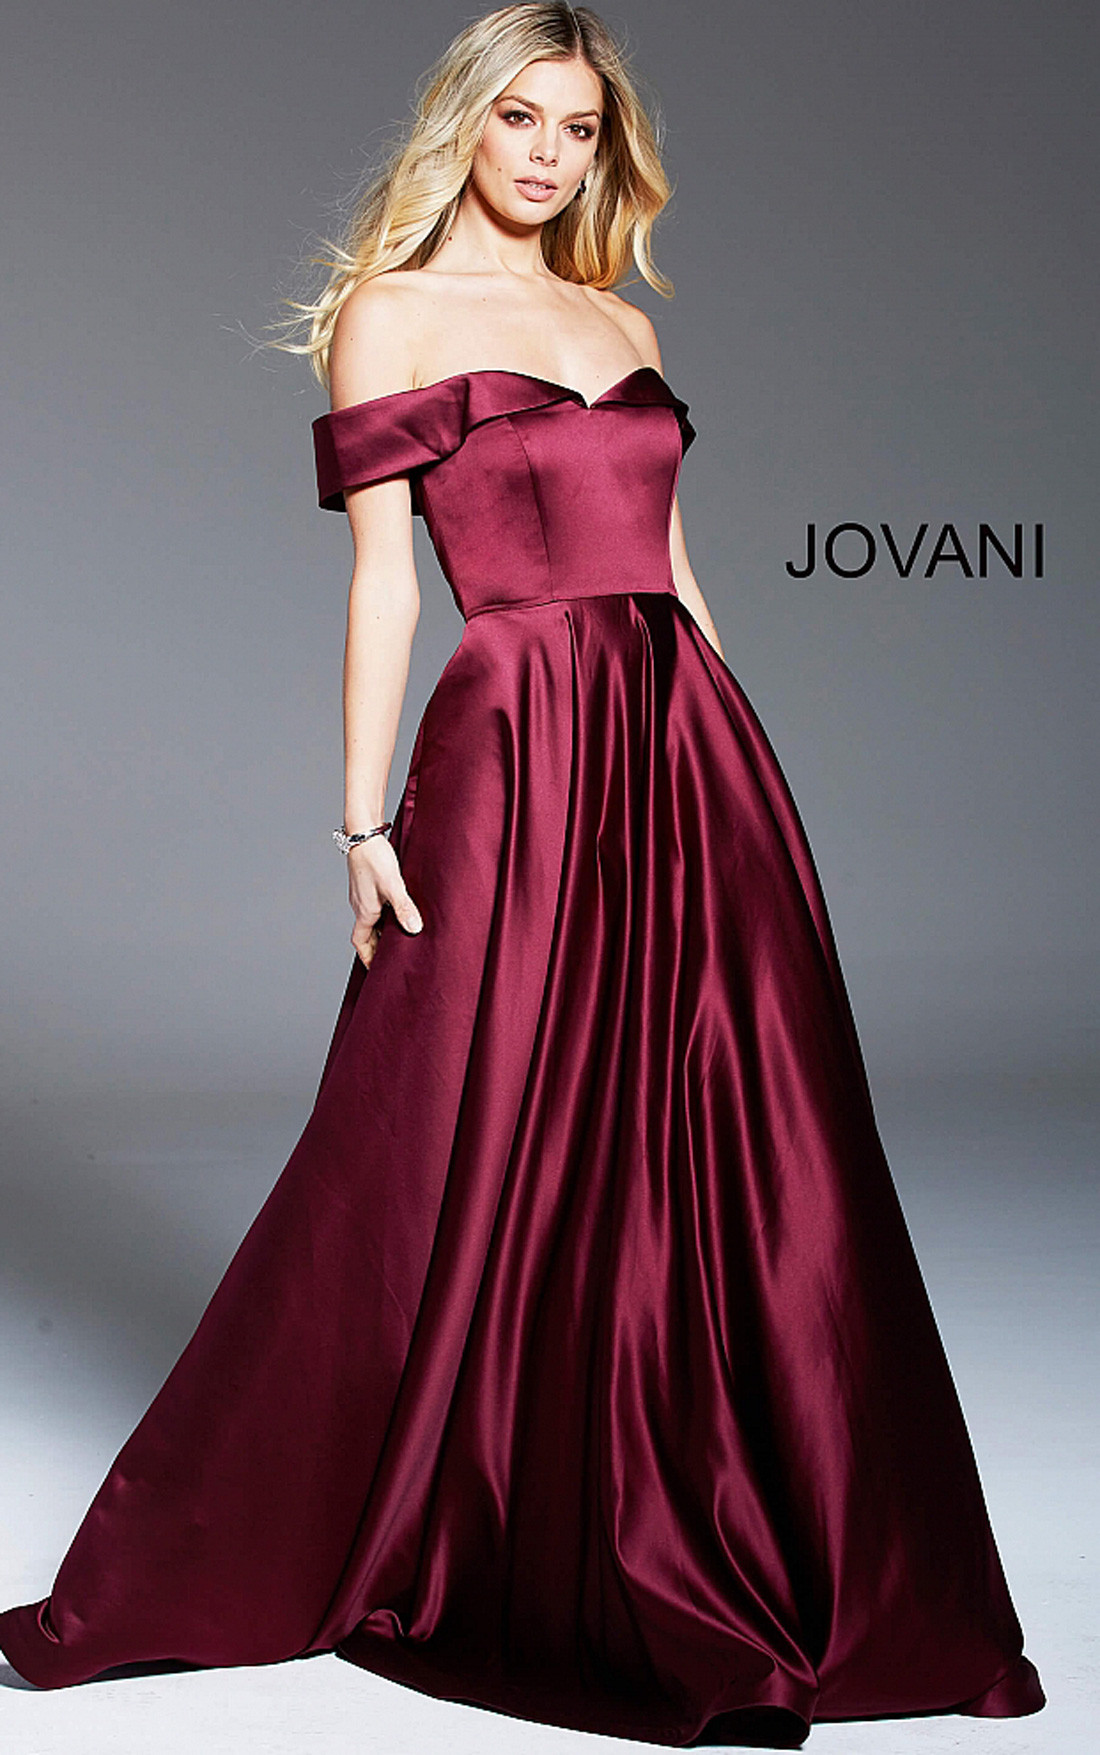 Jovani - Wine Off the Shoulder Pleated A Line Satin Formal Gown (59665)